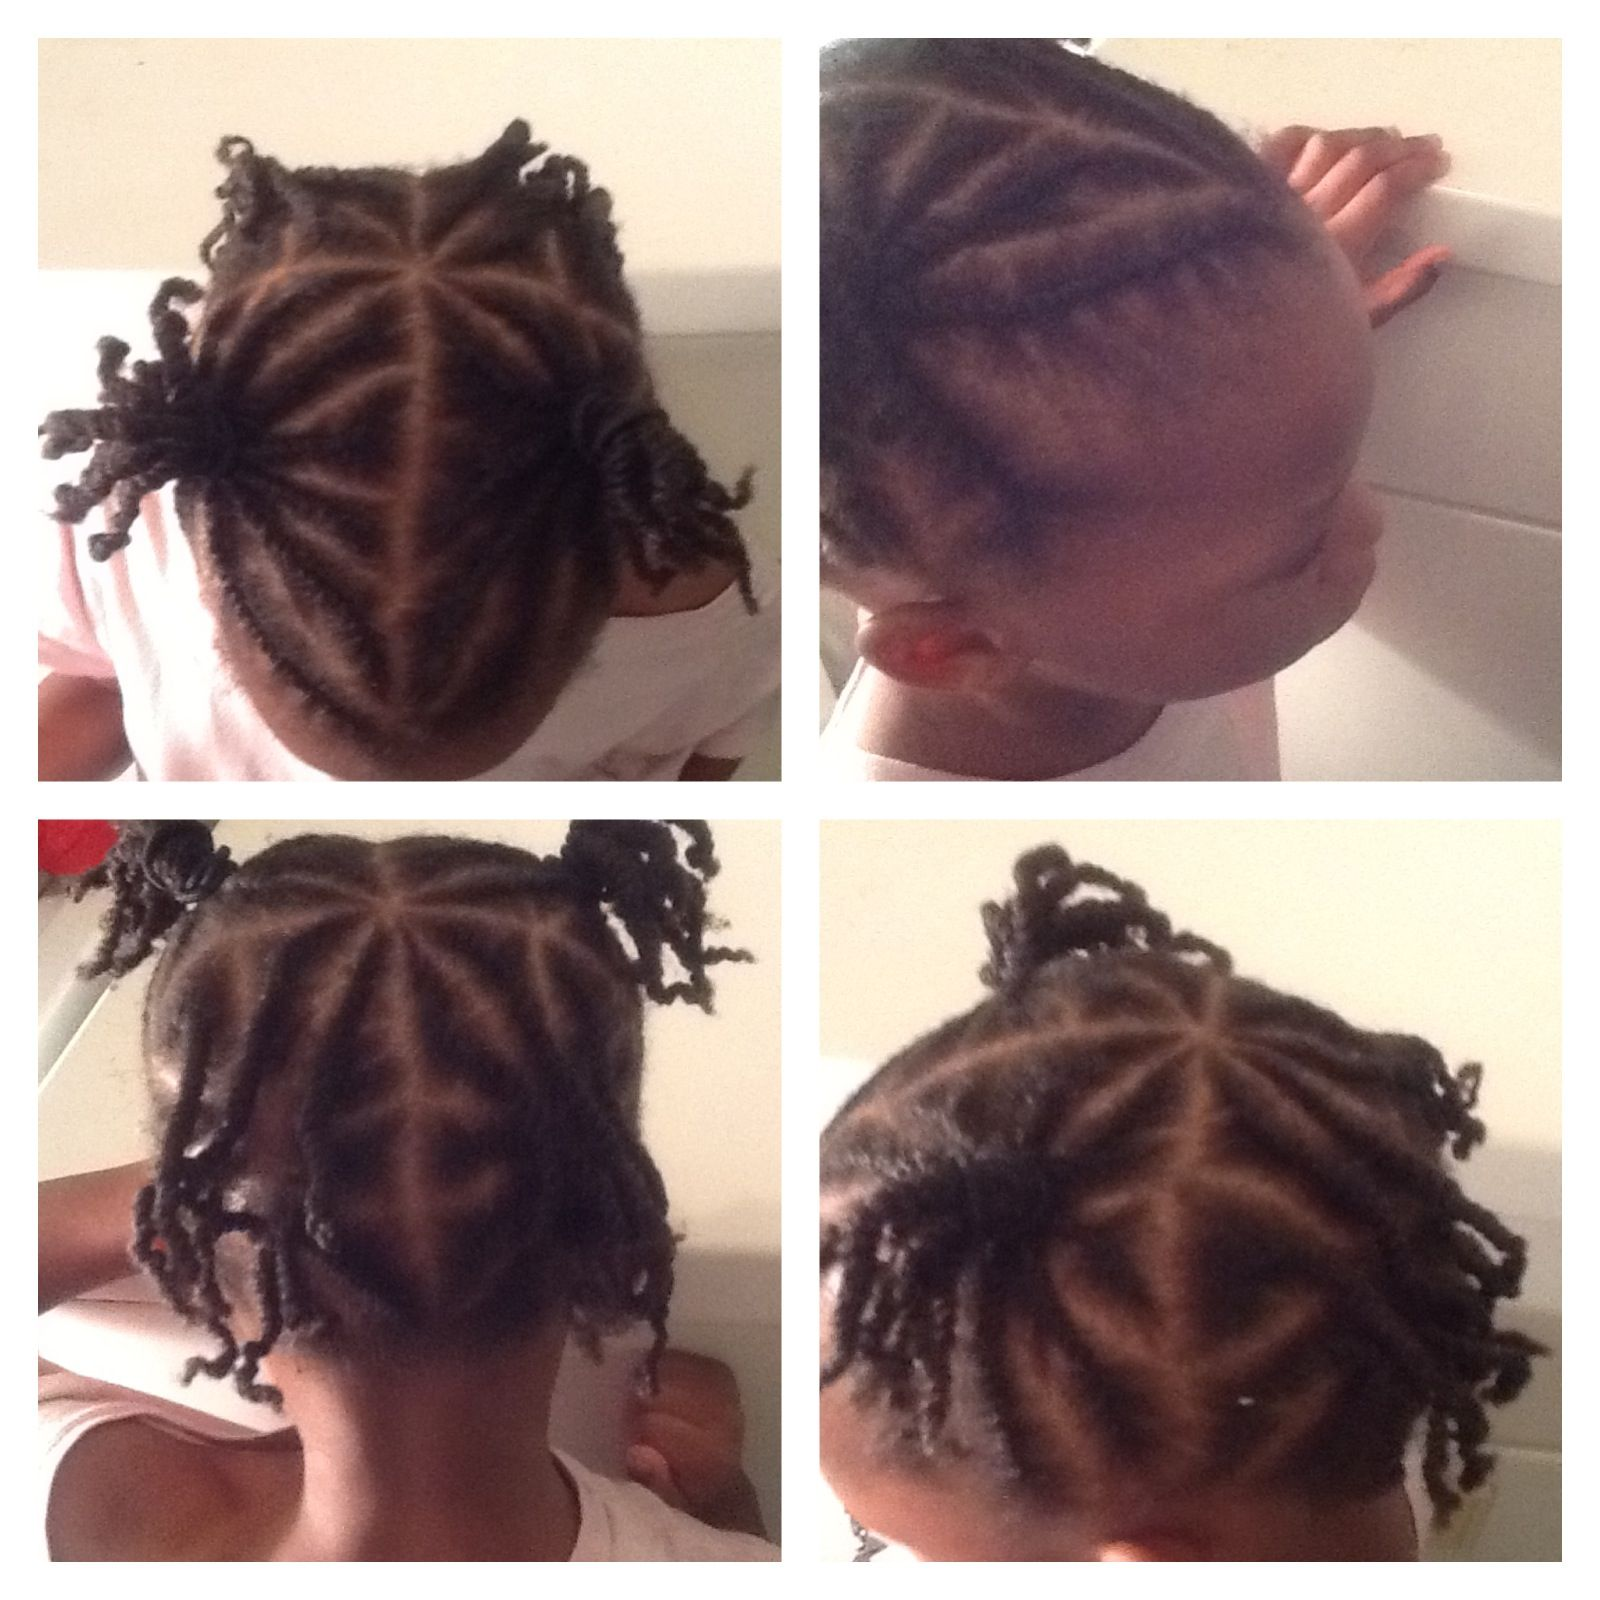 Flat twist for protective little girl hair style on 4c natural hair